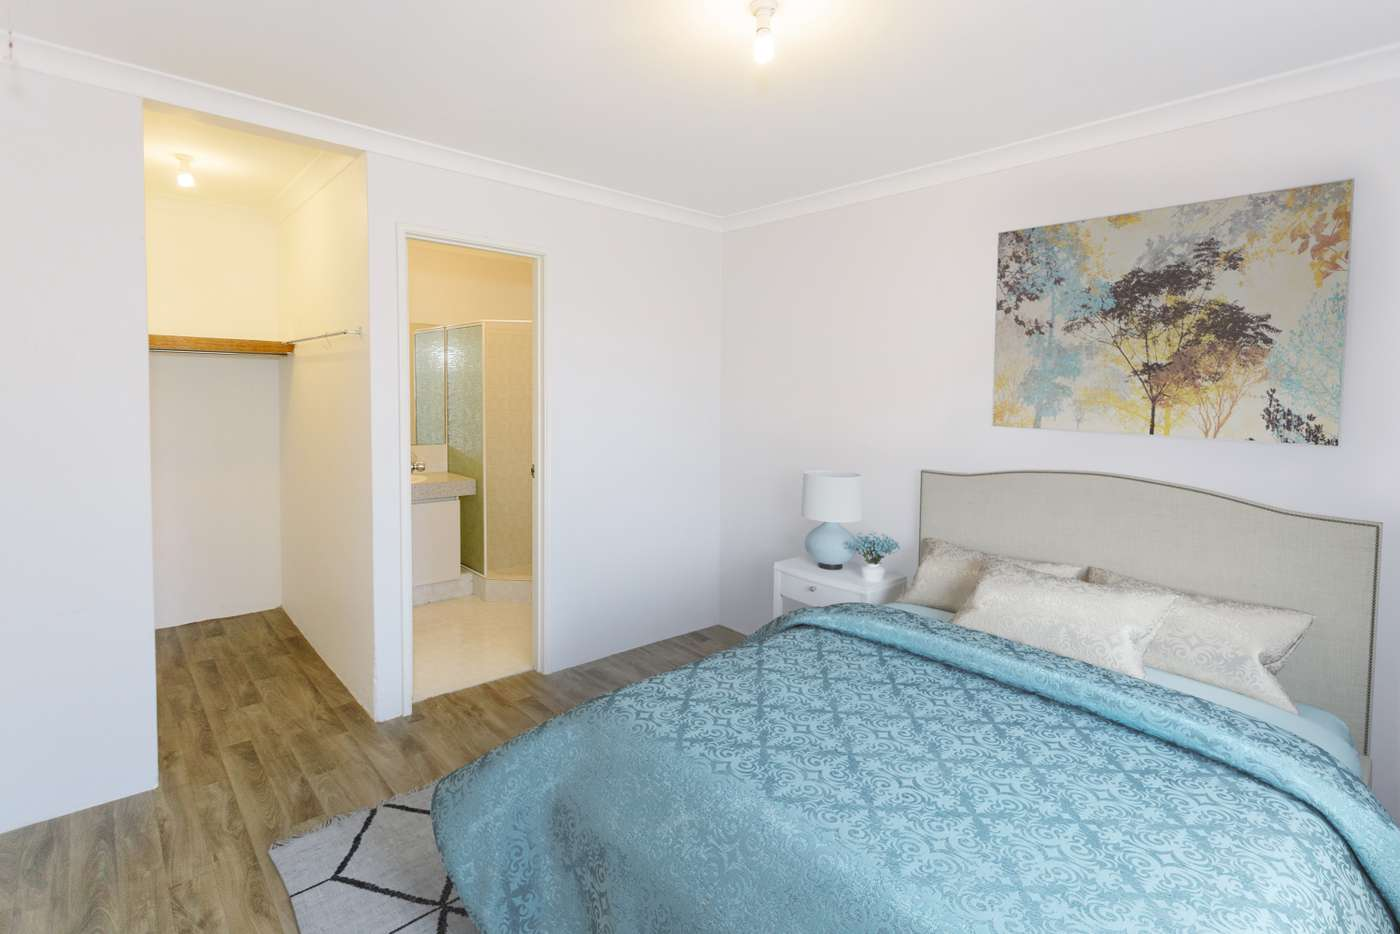 Sixth view of Homely house listing, 45 Amos Road, Wanneroo WA 6065